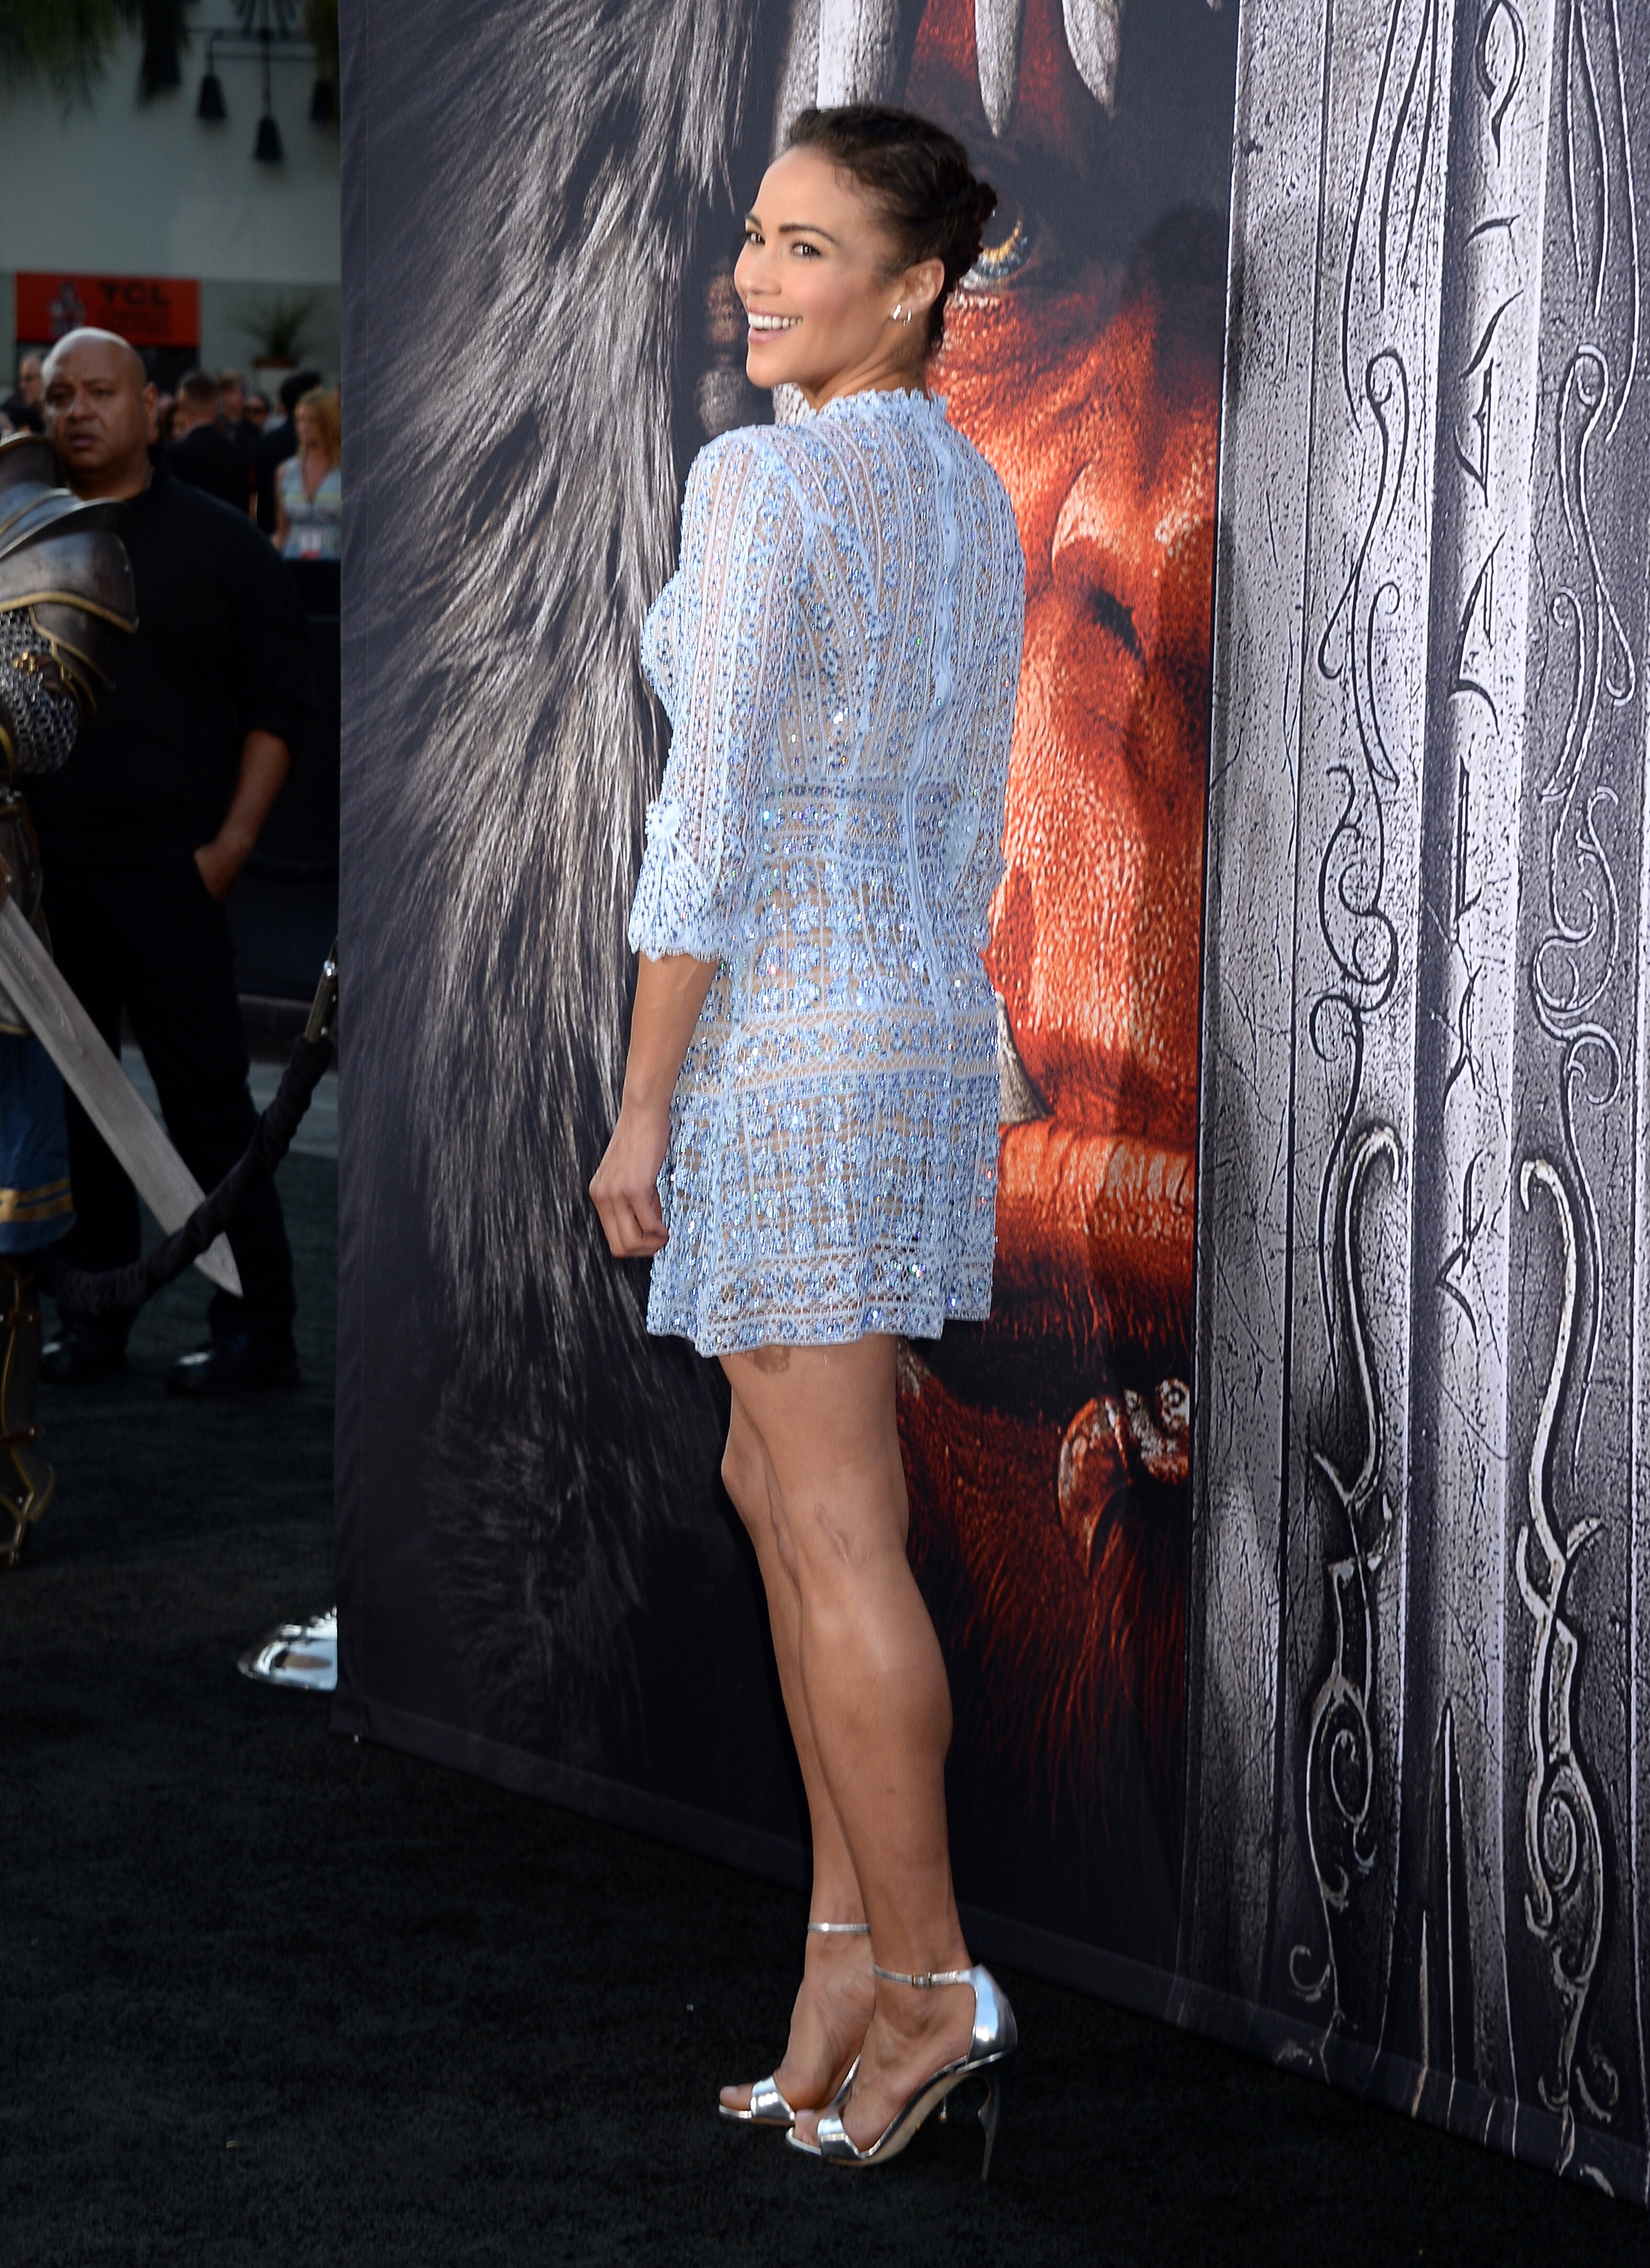 Paula Patton Stunning At Warcraft Premiere Only In High Heels